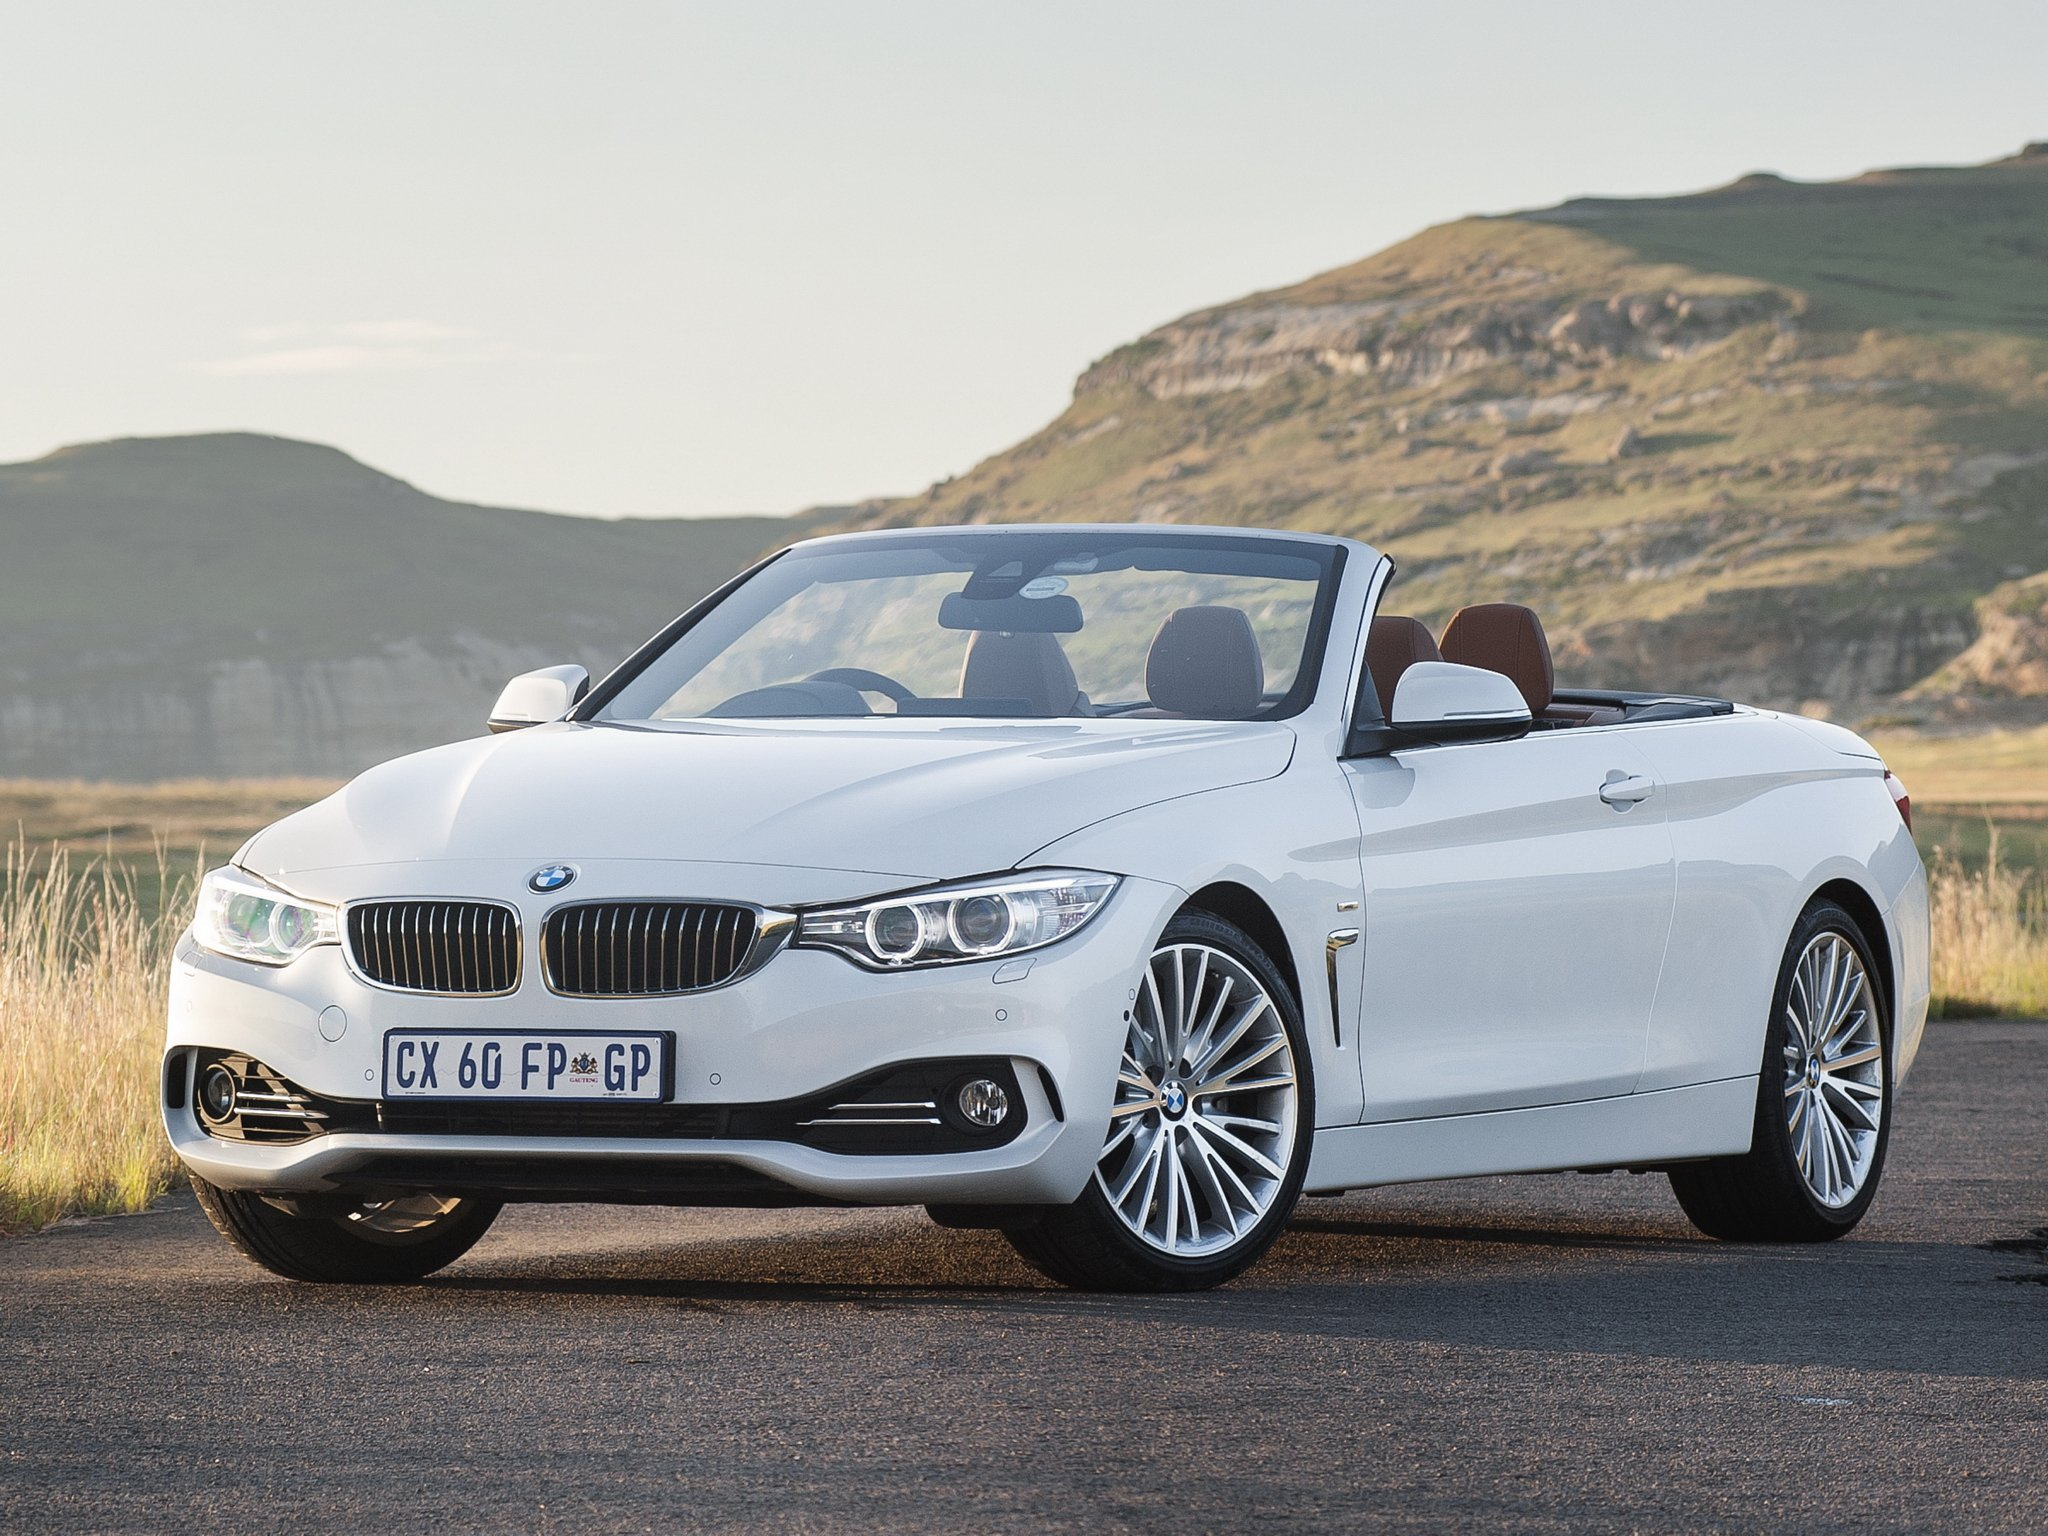 Bmw 428i Convertible 2017 >> 2014 BMW 428i Cabrio Luxury Line ZA-spec (F33) convertible 4g wallpaper | 2048x1536 | 320397 ...